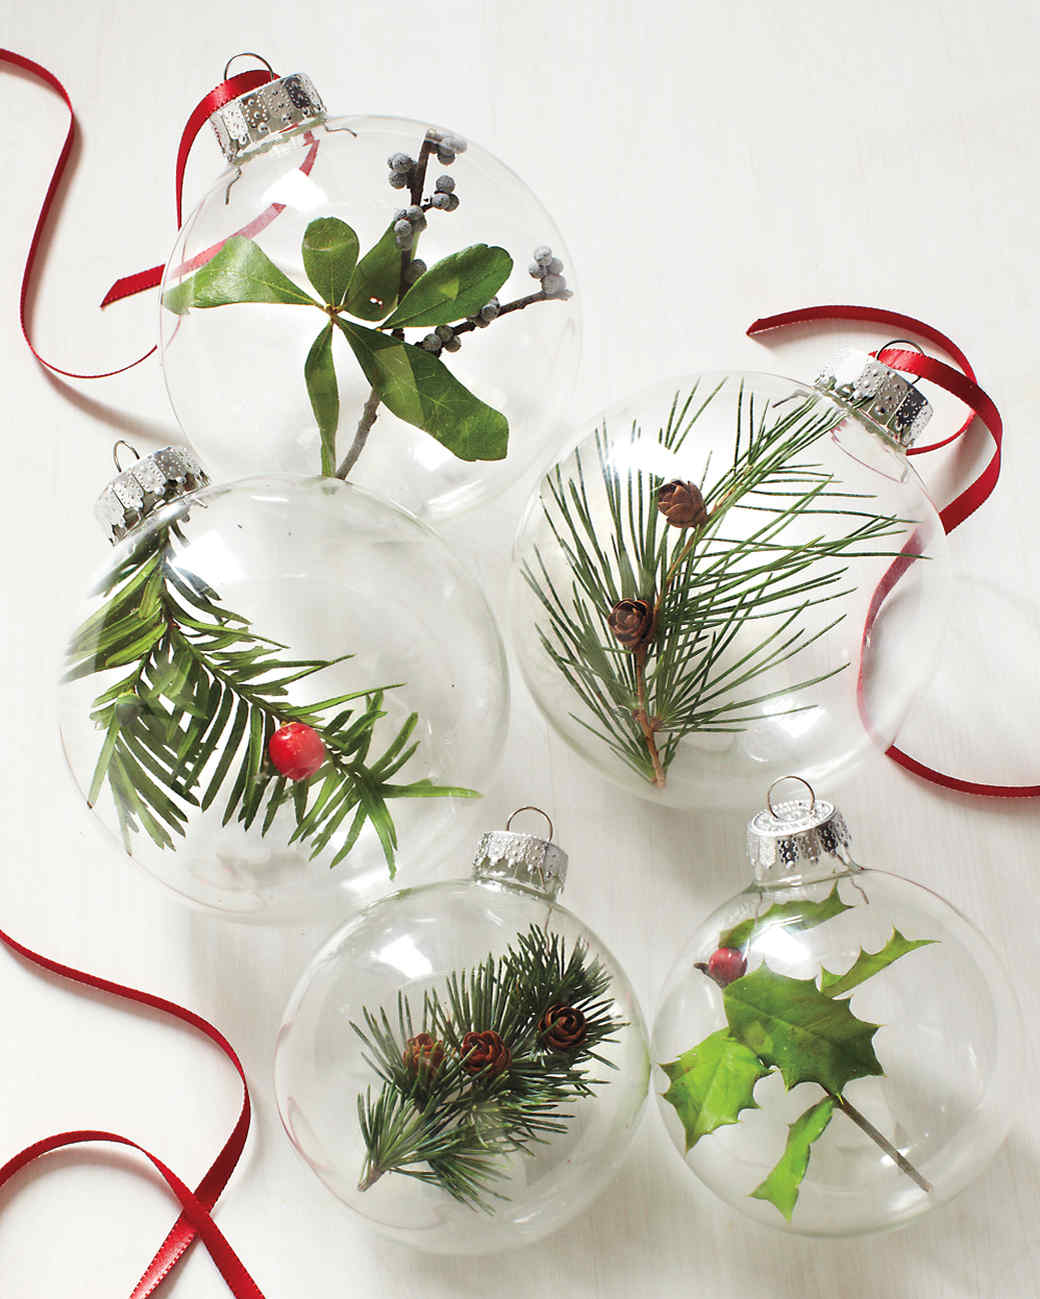 Diy christmas ornament projects martha stewart nature ornaments solutioingenieria Choice Image